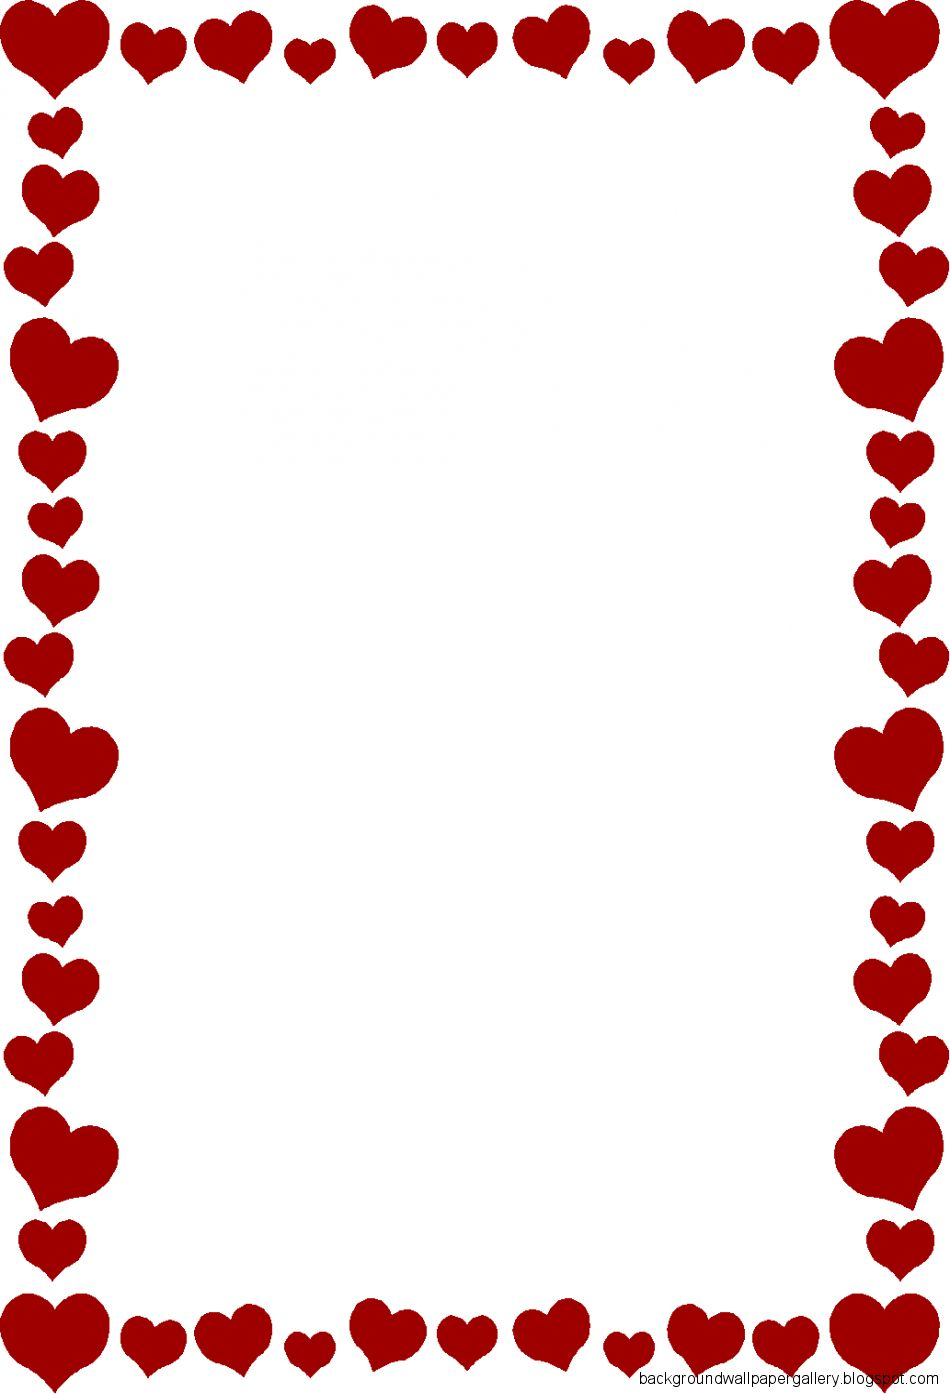 valentines day background clipart - photo #42